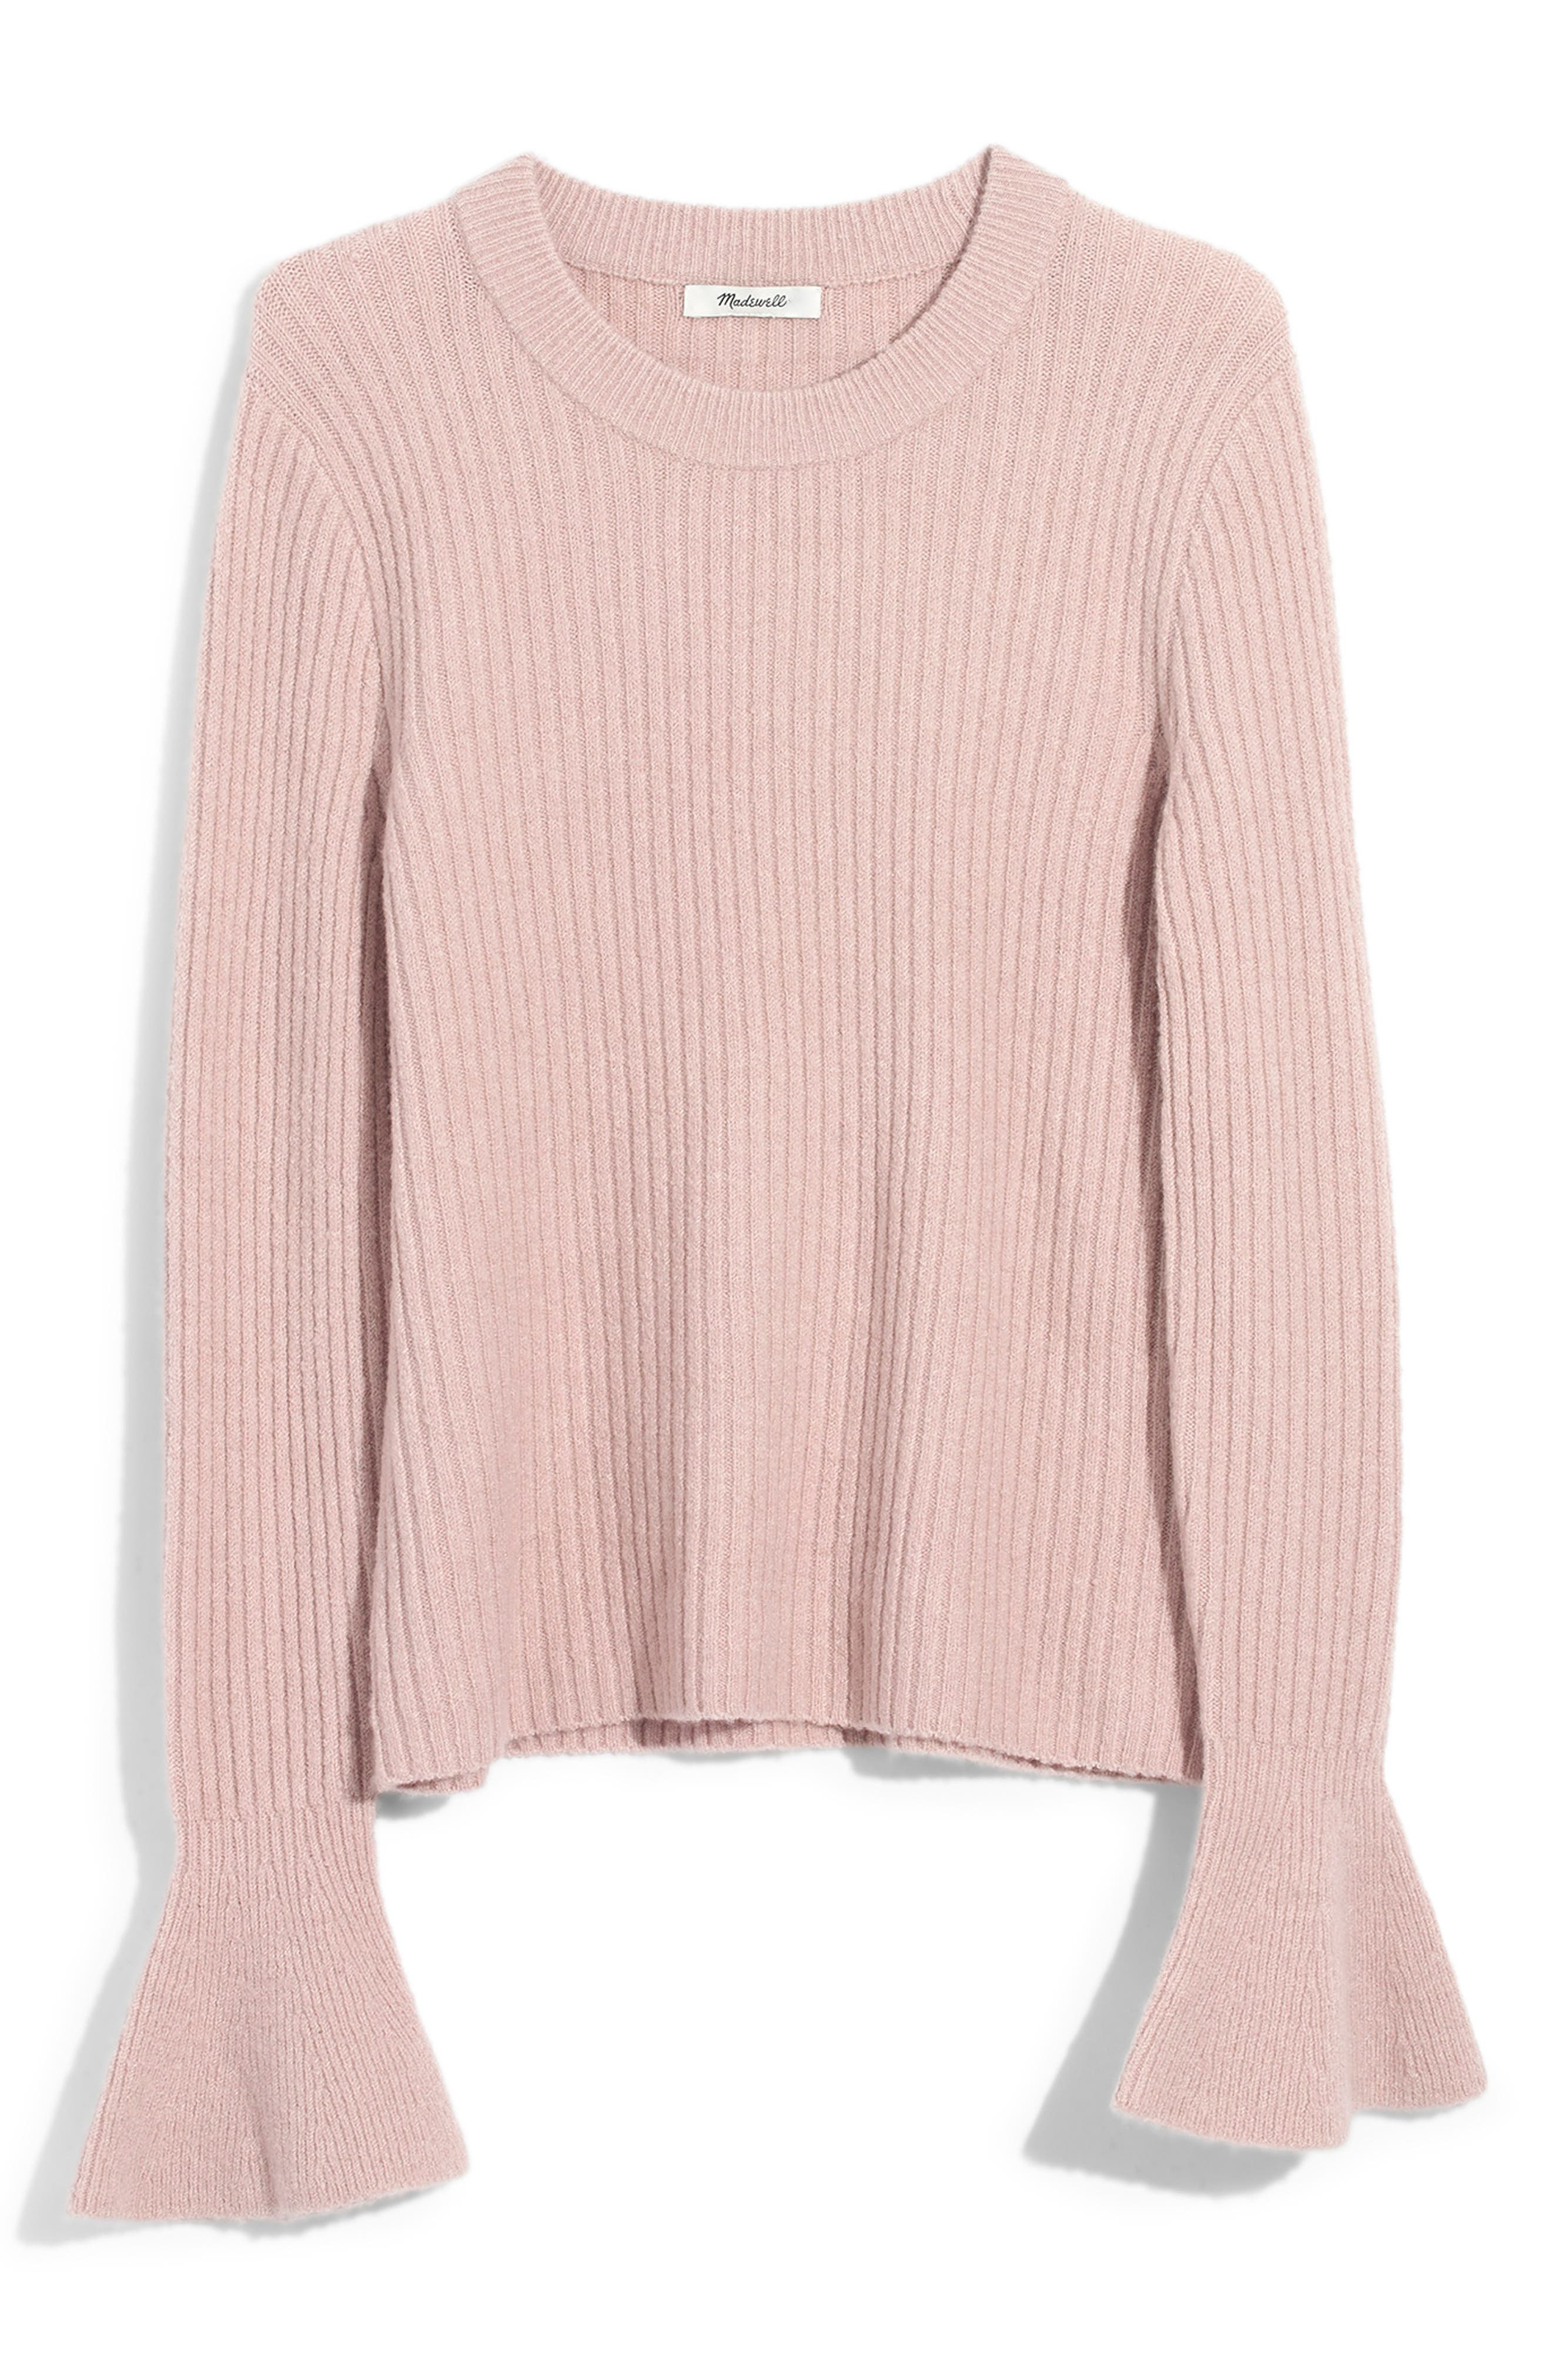 MADEWELL Ruffle Cuff Pullover Sweater, Main, color, ICED ROSE